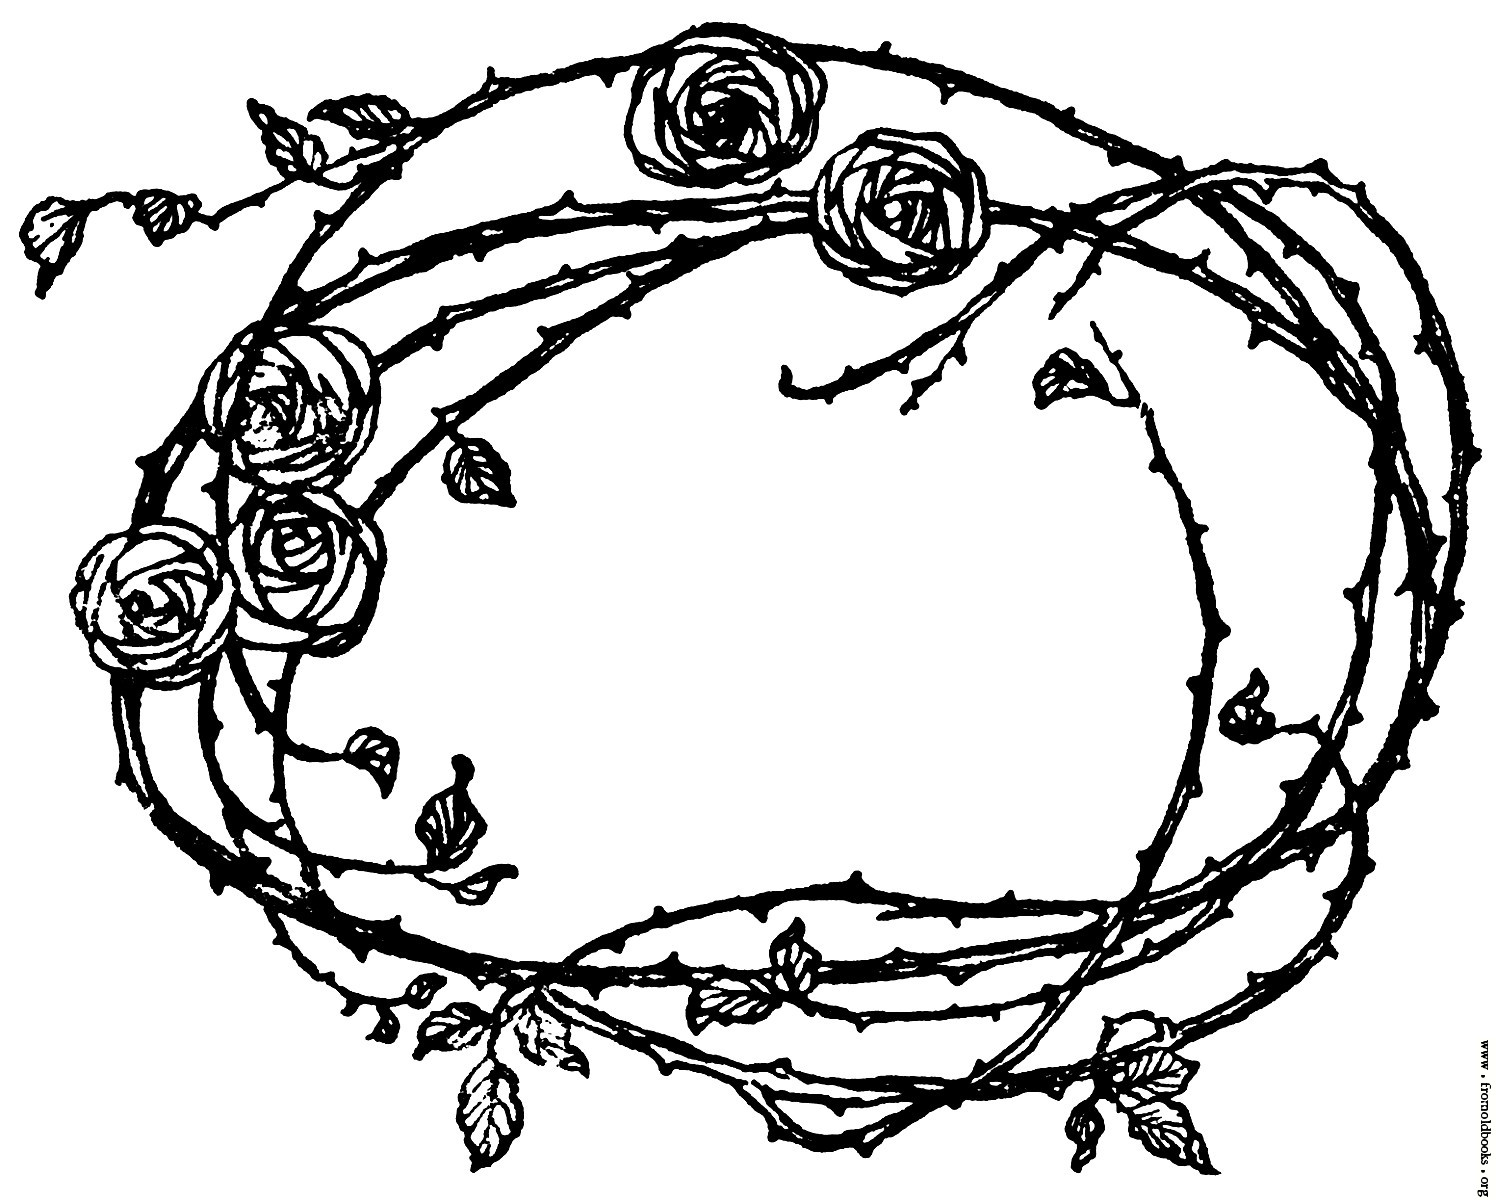 Thorn Crown Drawing at GetDrawings.com | Free for personal use Thorn ...